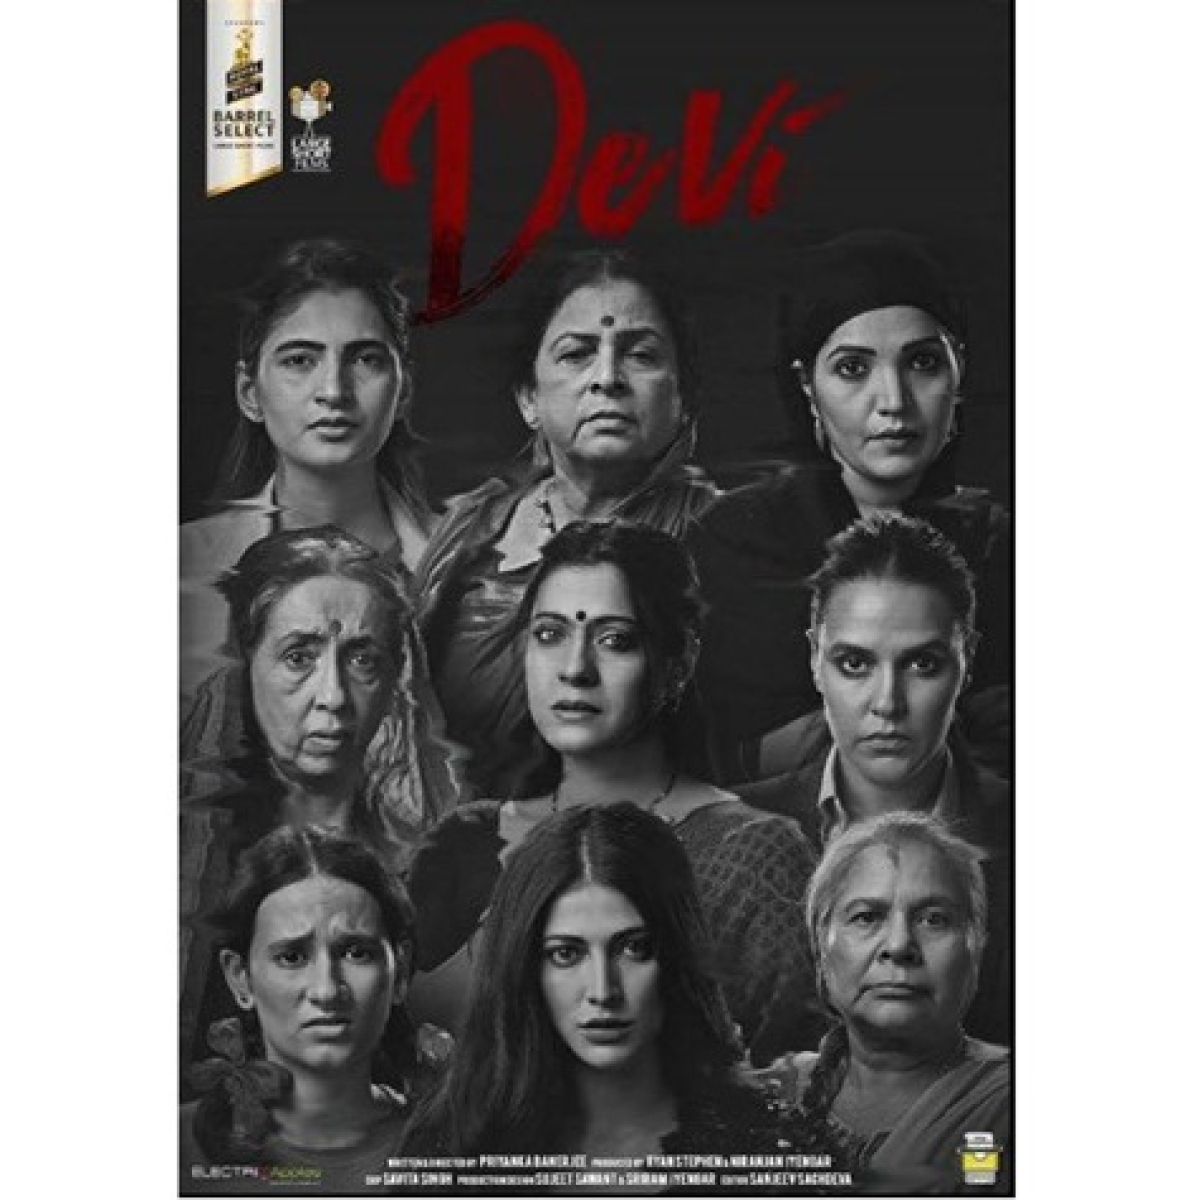 Devi: Kajol shares captivating poster featuring Shruti Hasan, Neha Dhupia and others